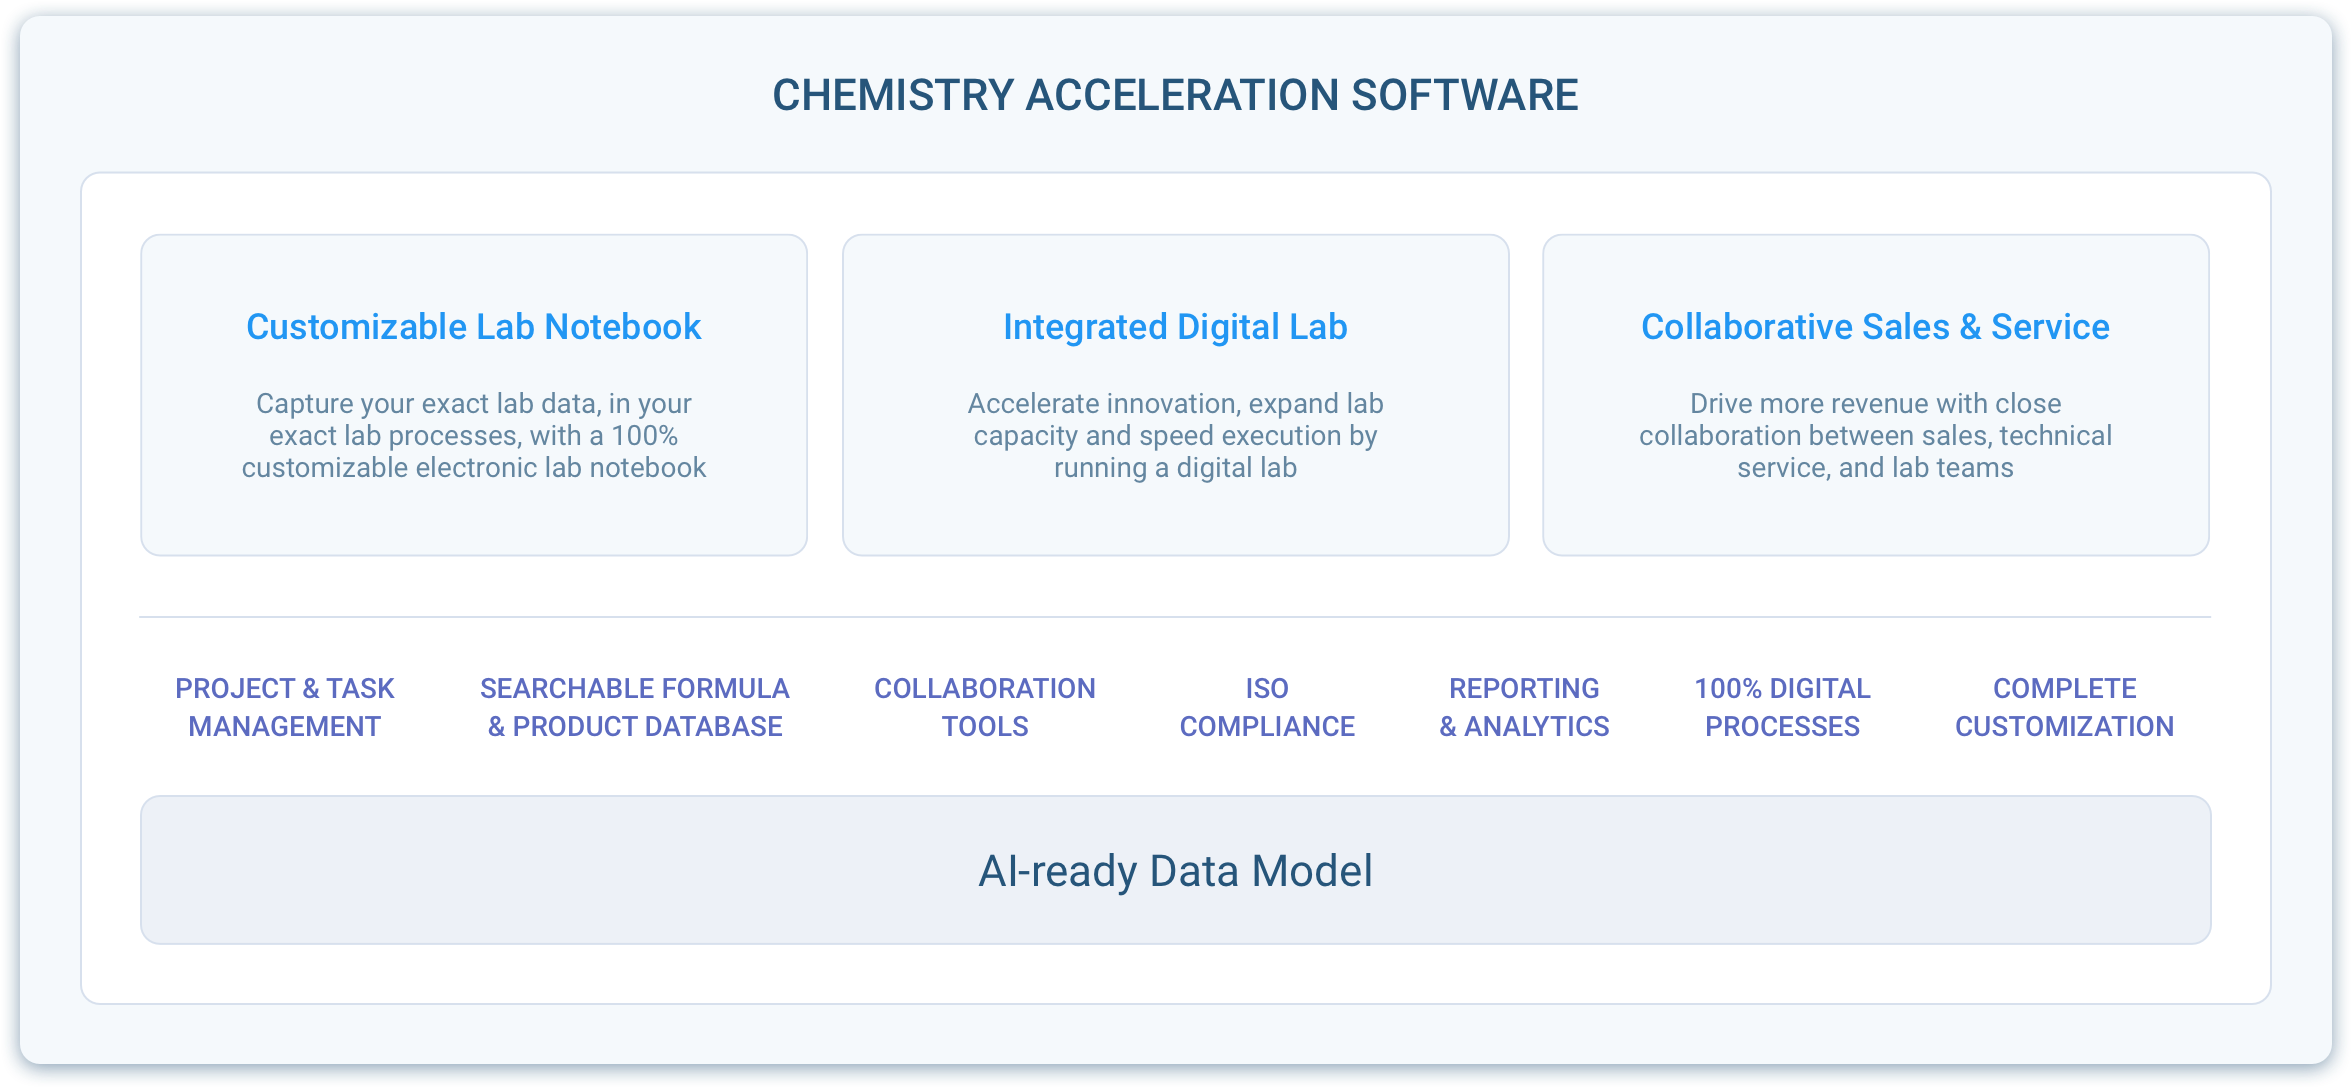 Chemistry Acceleration Software Diagram